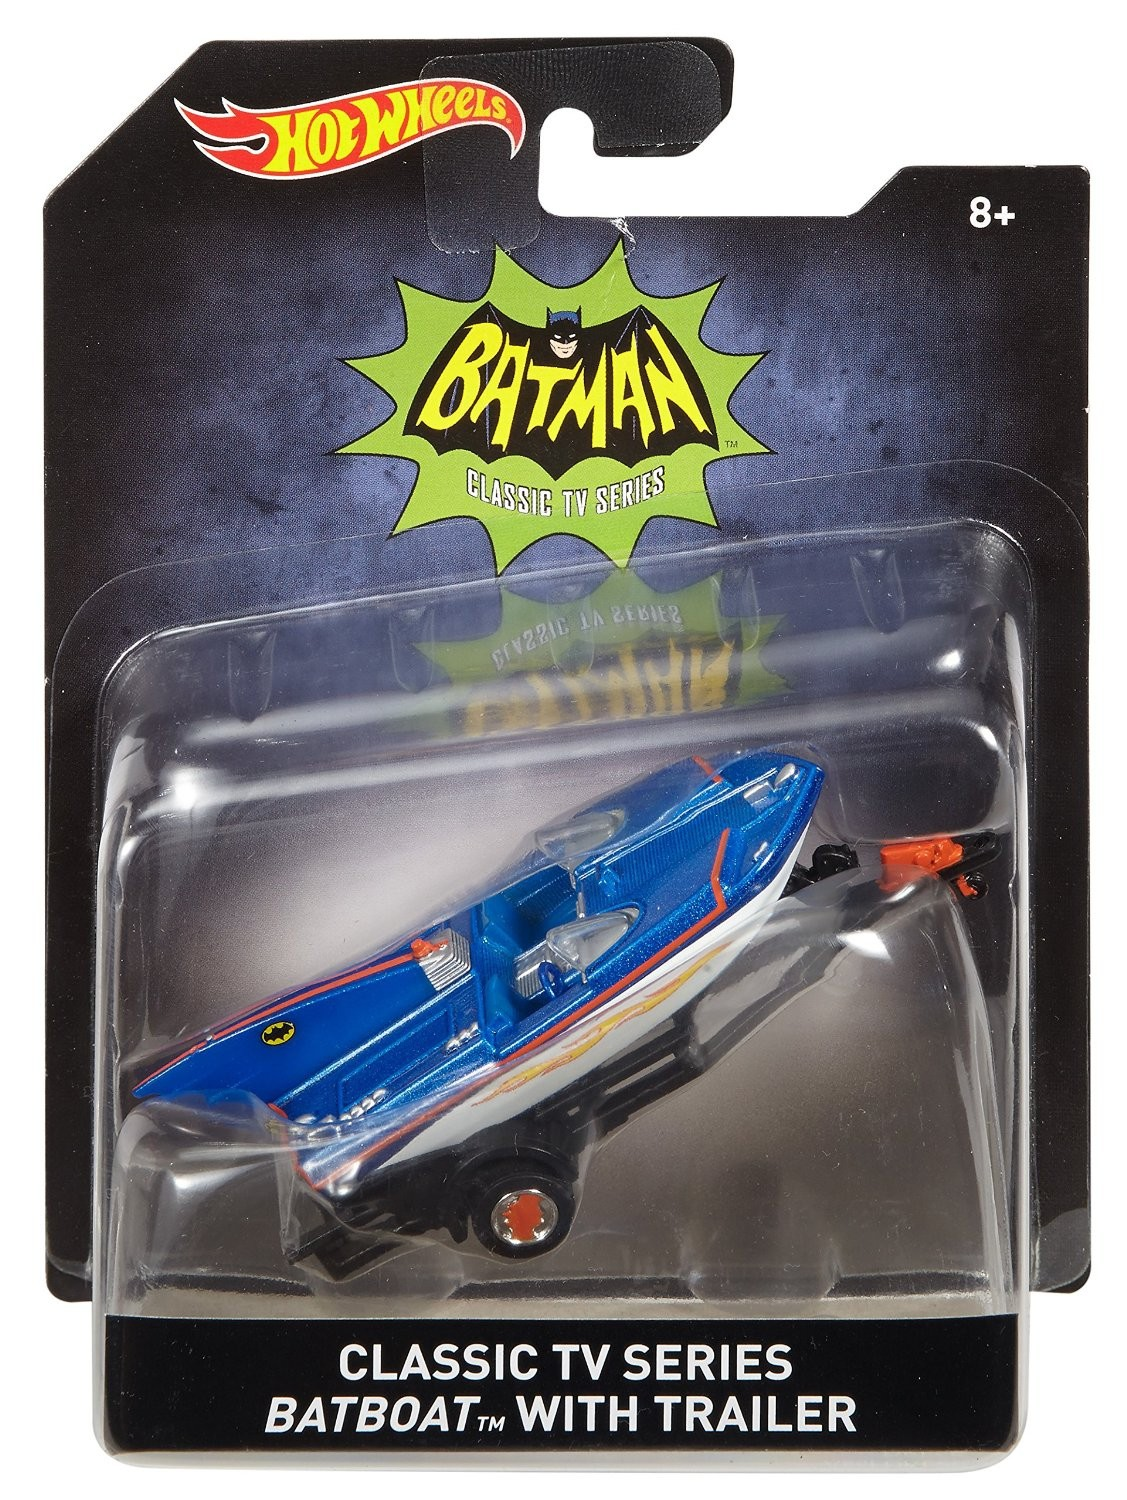 Hot Wheels Hot Wheels Машинка Hot Wheels «Batman» коллекционная 1:50 new hot 25cm batman batgirl justice league batwoman enhanced version action figure toys collection christmas gift